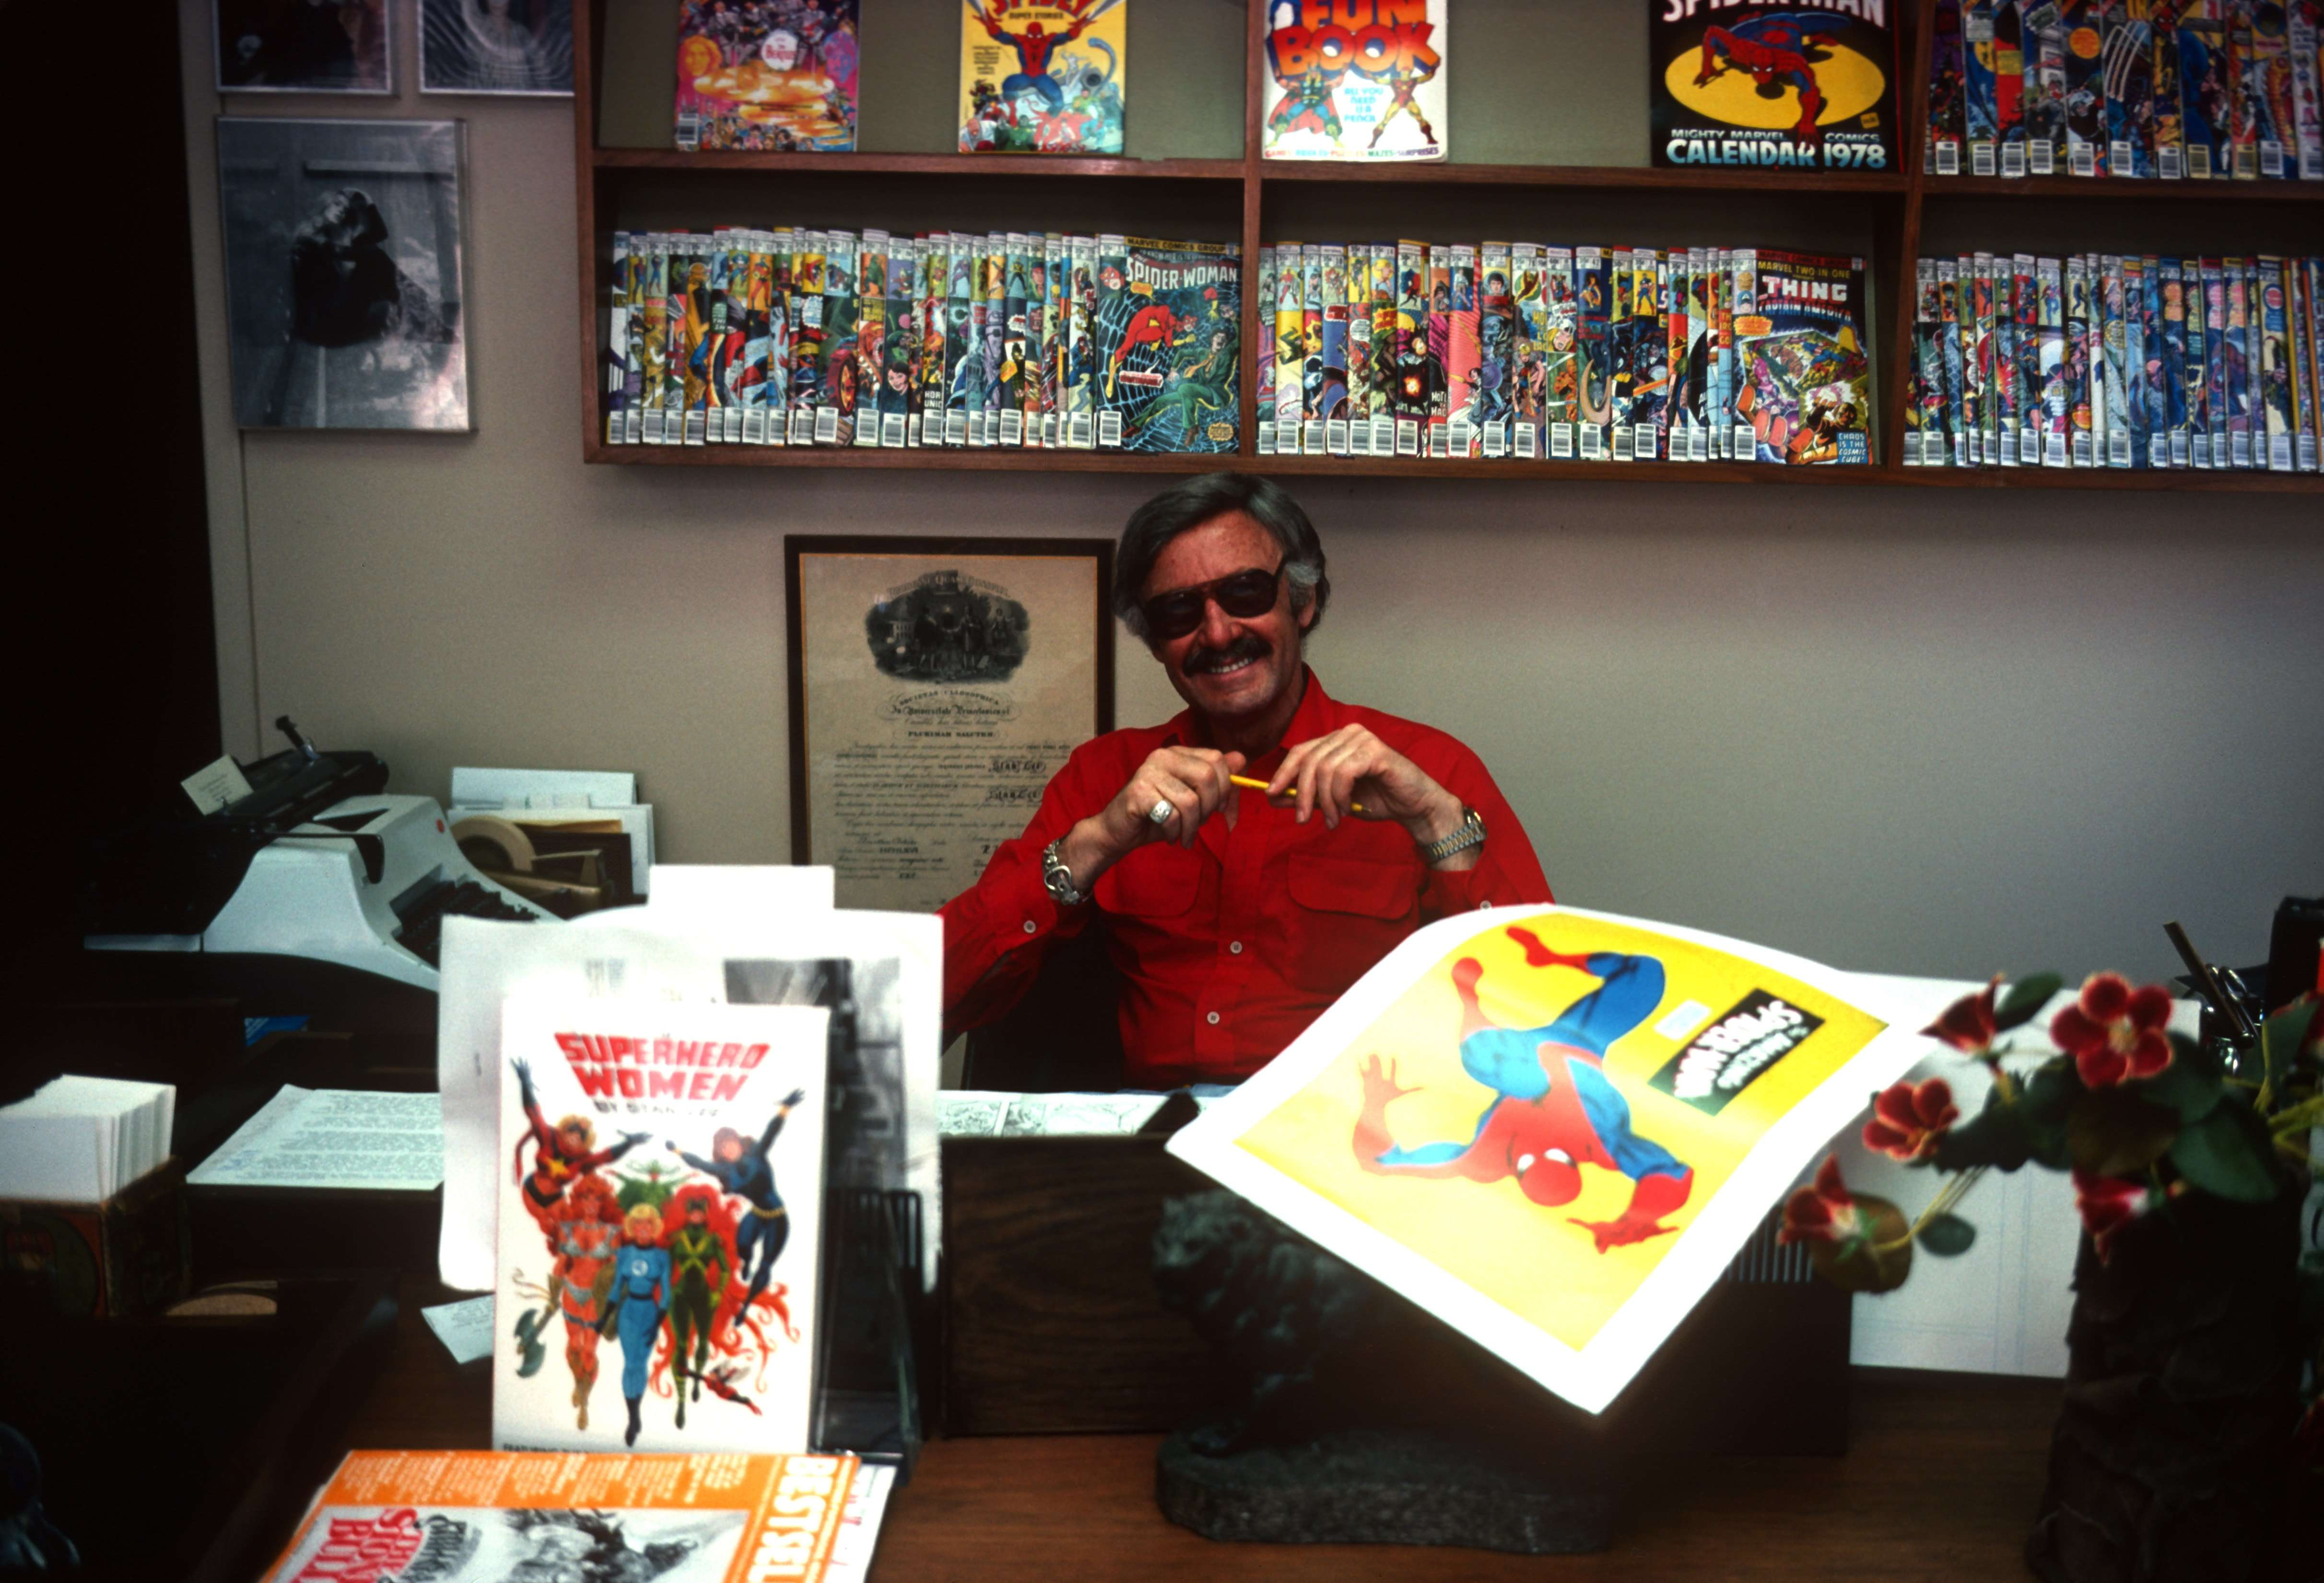 Let's bring back Stan's Soapbox! Here are 5 creators who could do it